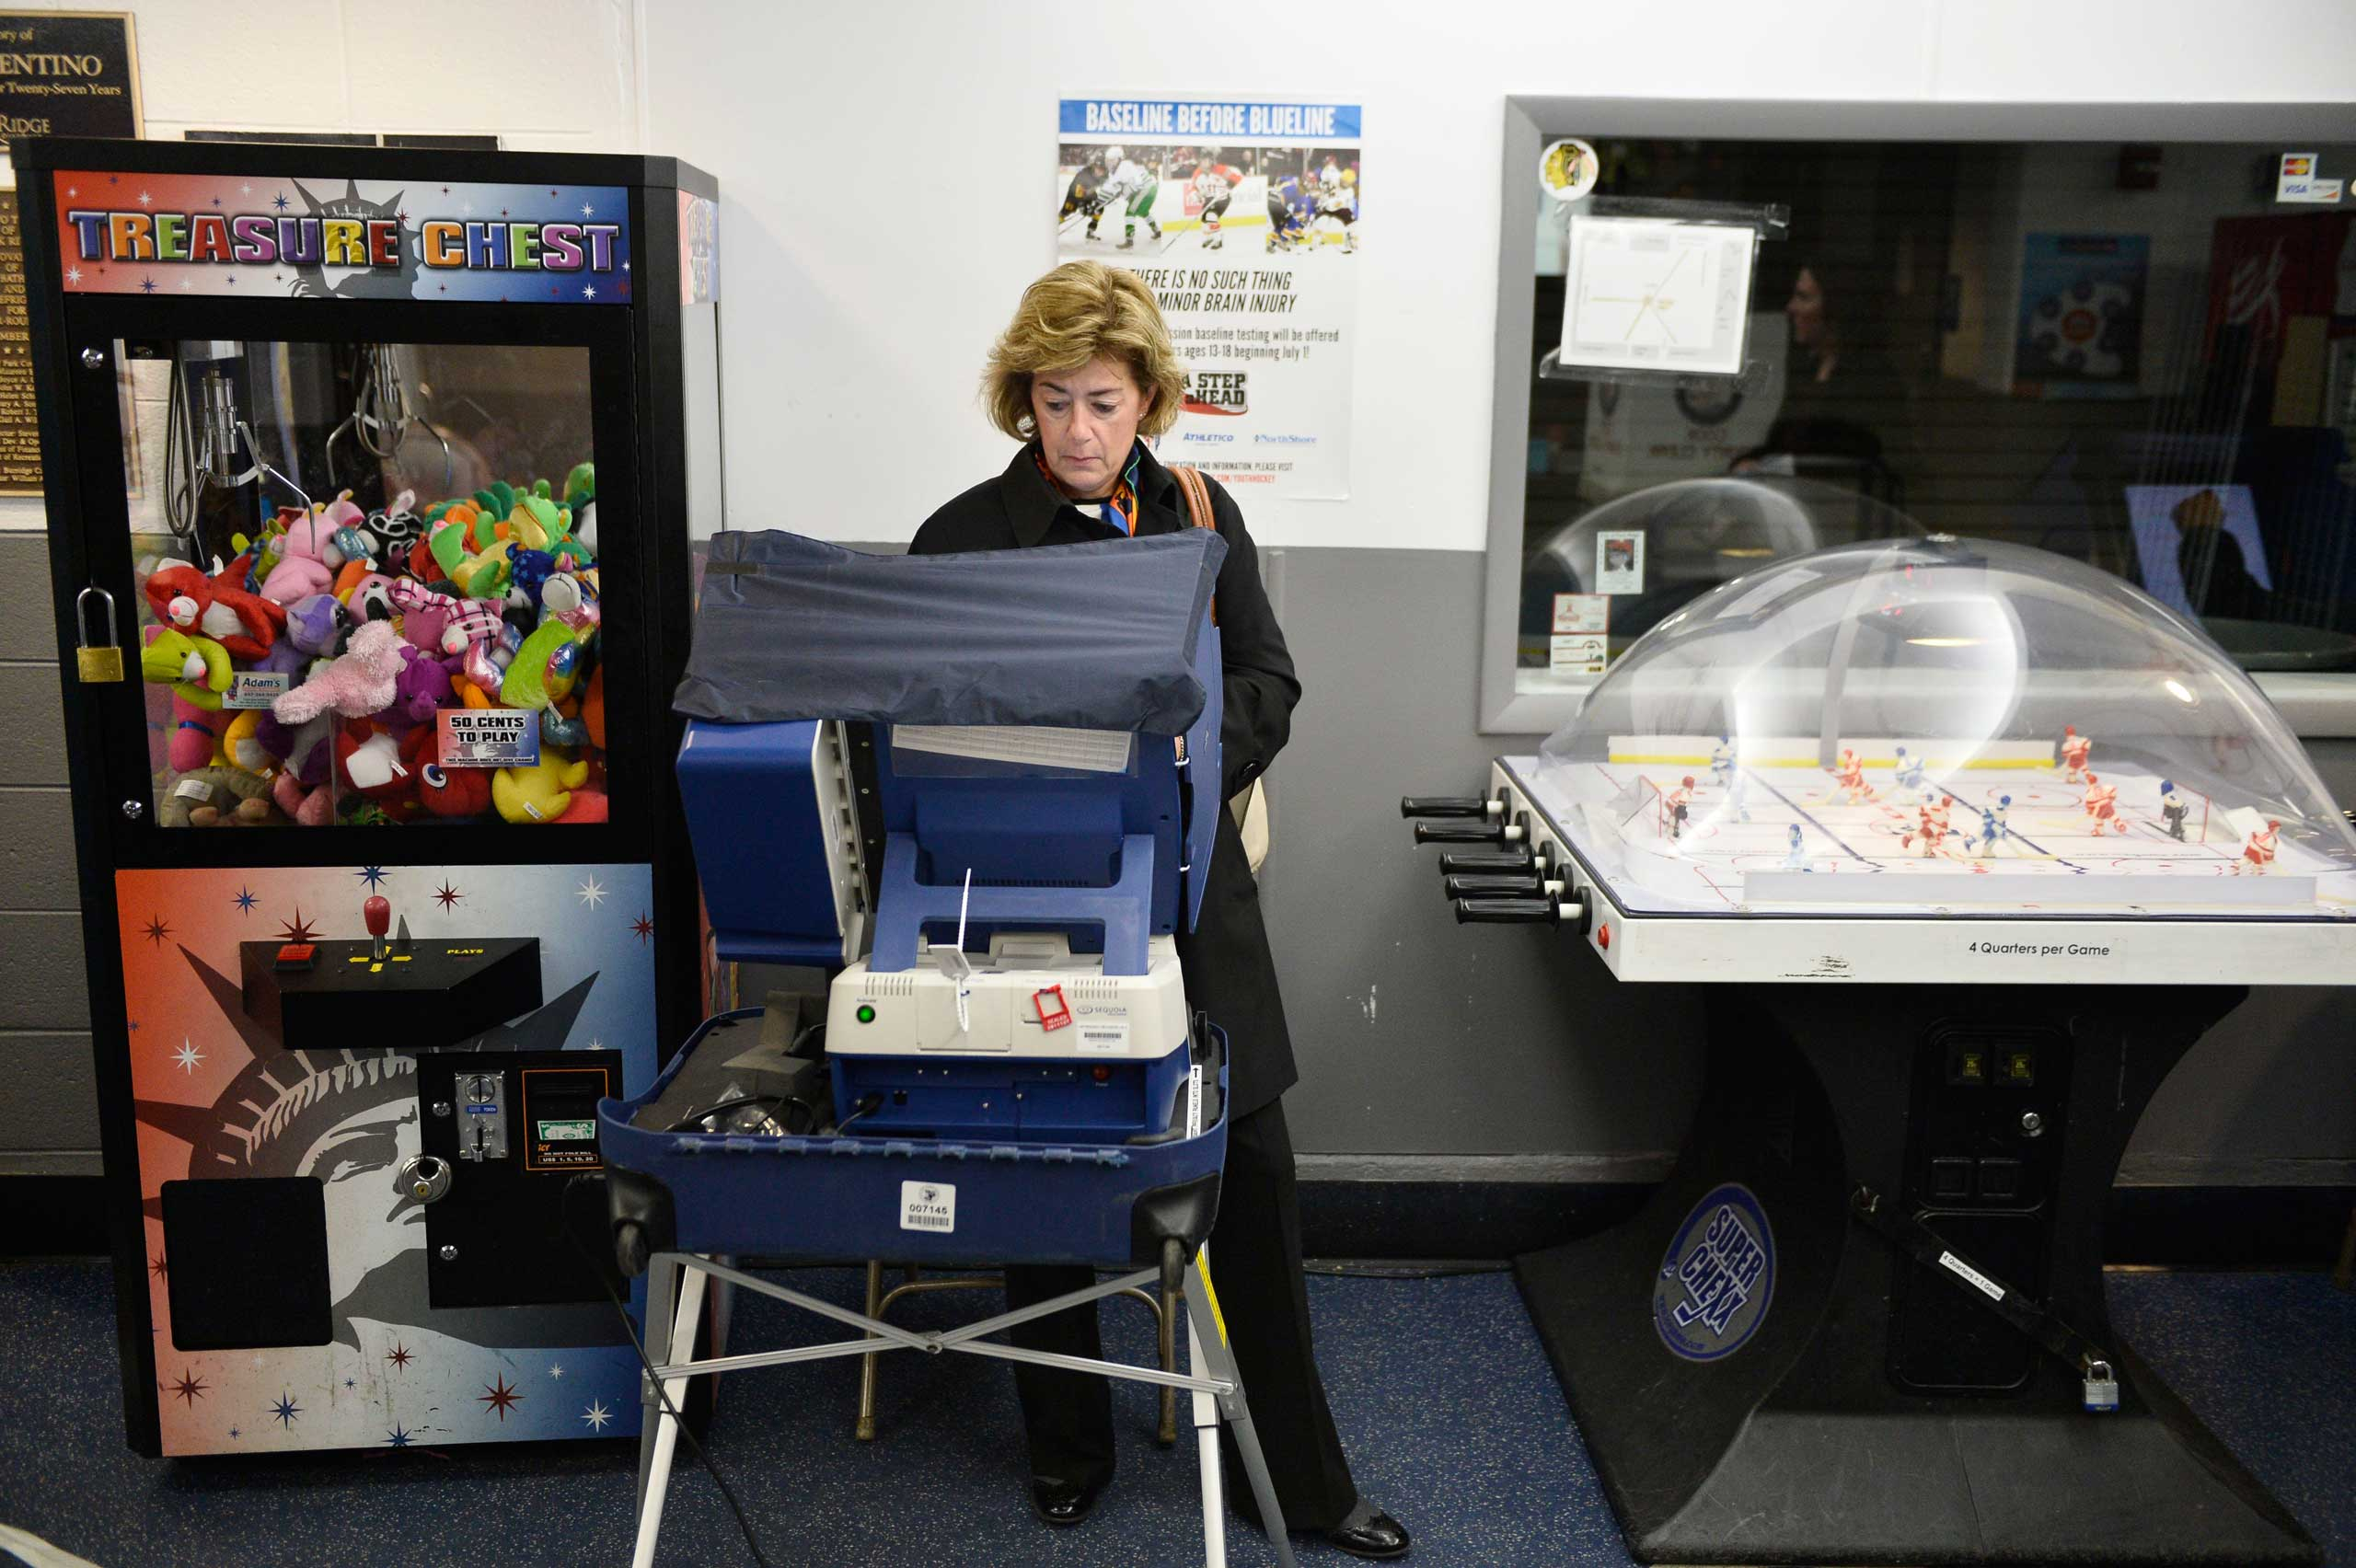 Sandy Anderson votes at Oakton Ice Arena in Park Ridge, Ill. on Nov. 4, 2014.